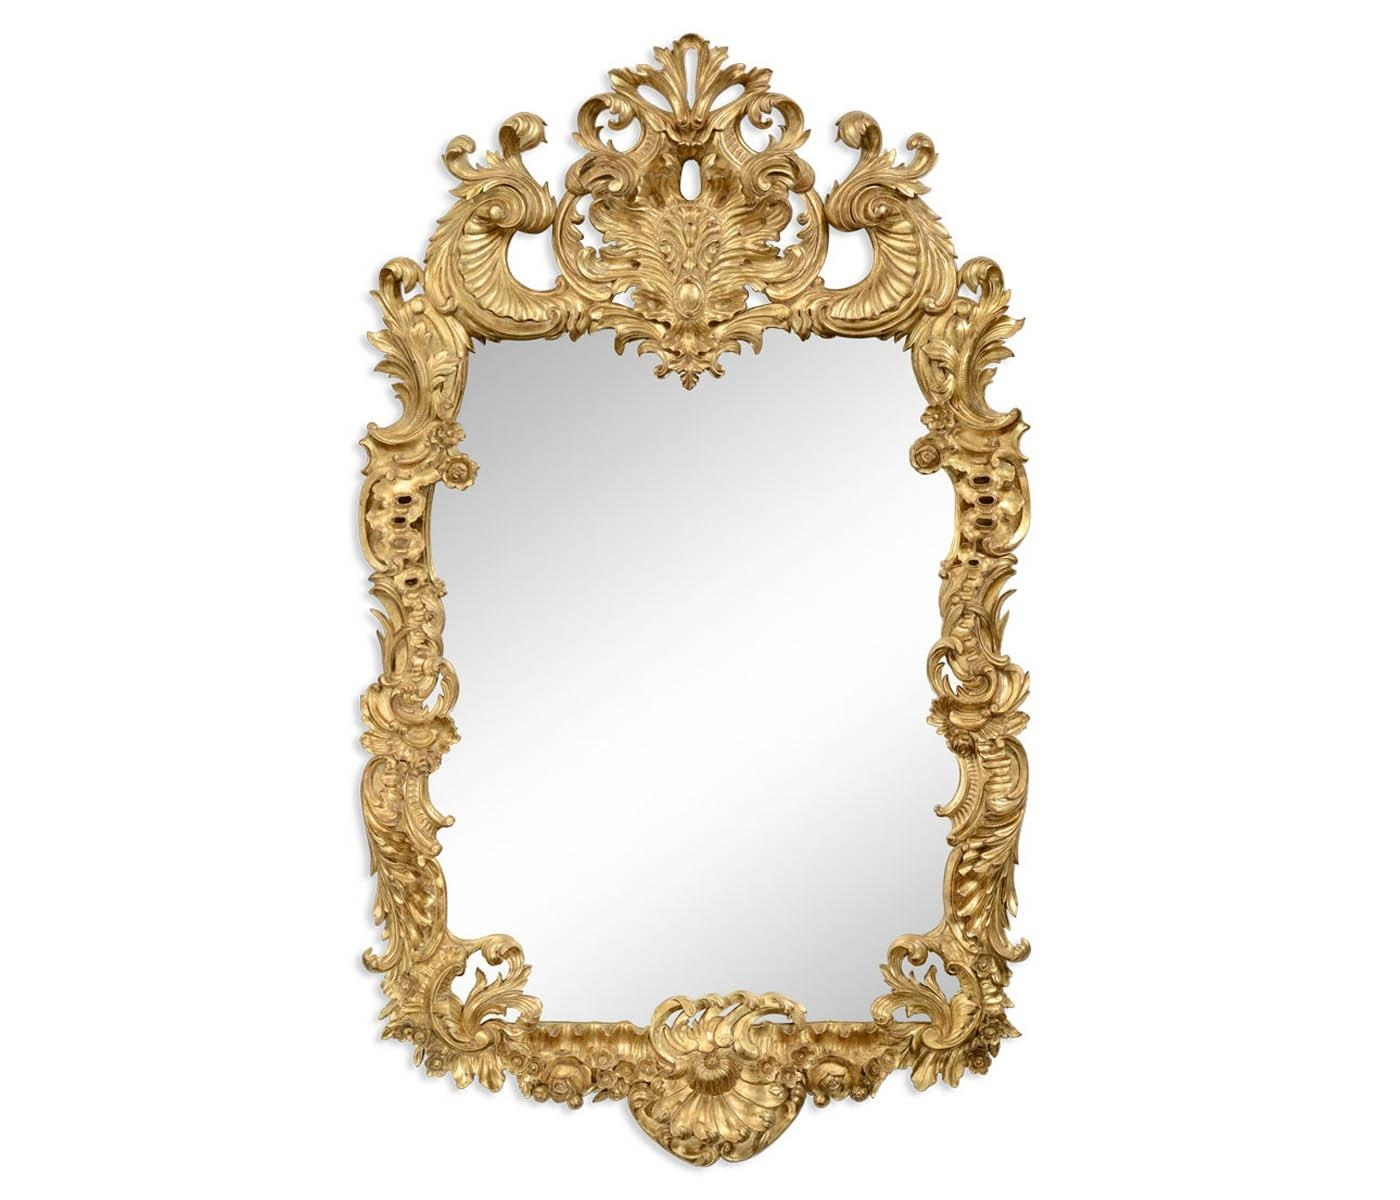 Carved Gold Rococo Style Mirror | Swanky Interiors Intended For Gold Rococo Mirror (Image 9 of 20)